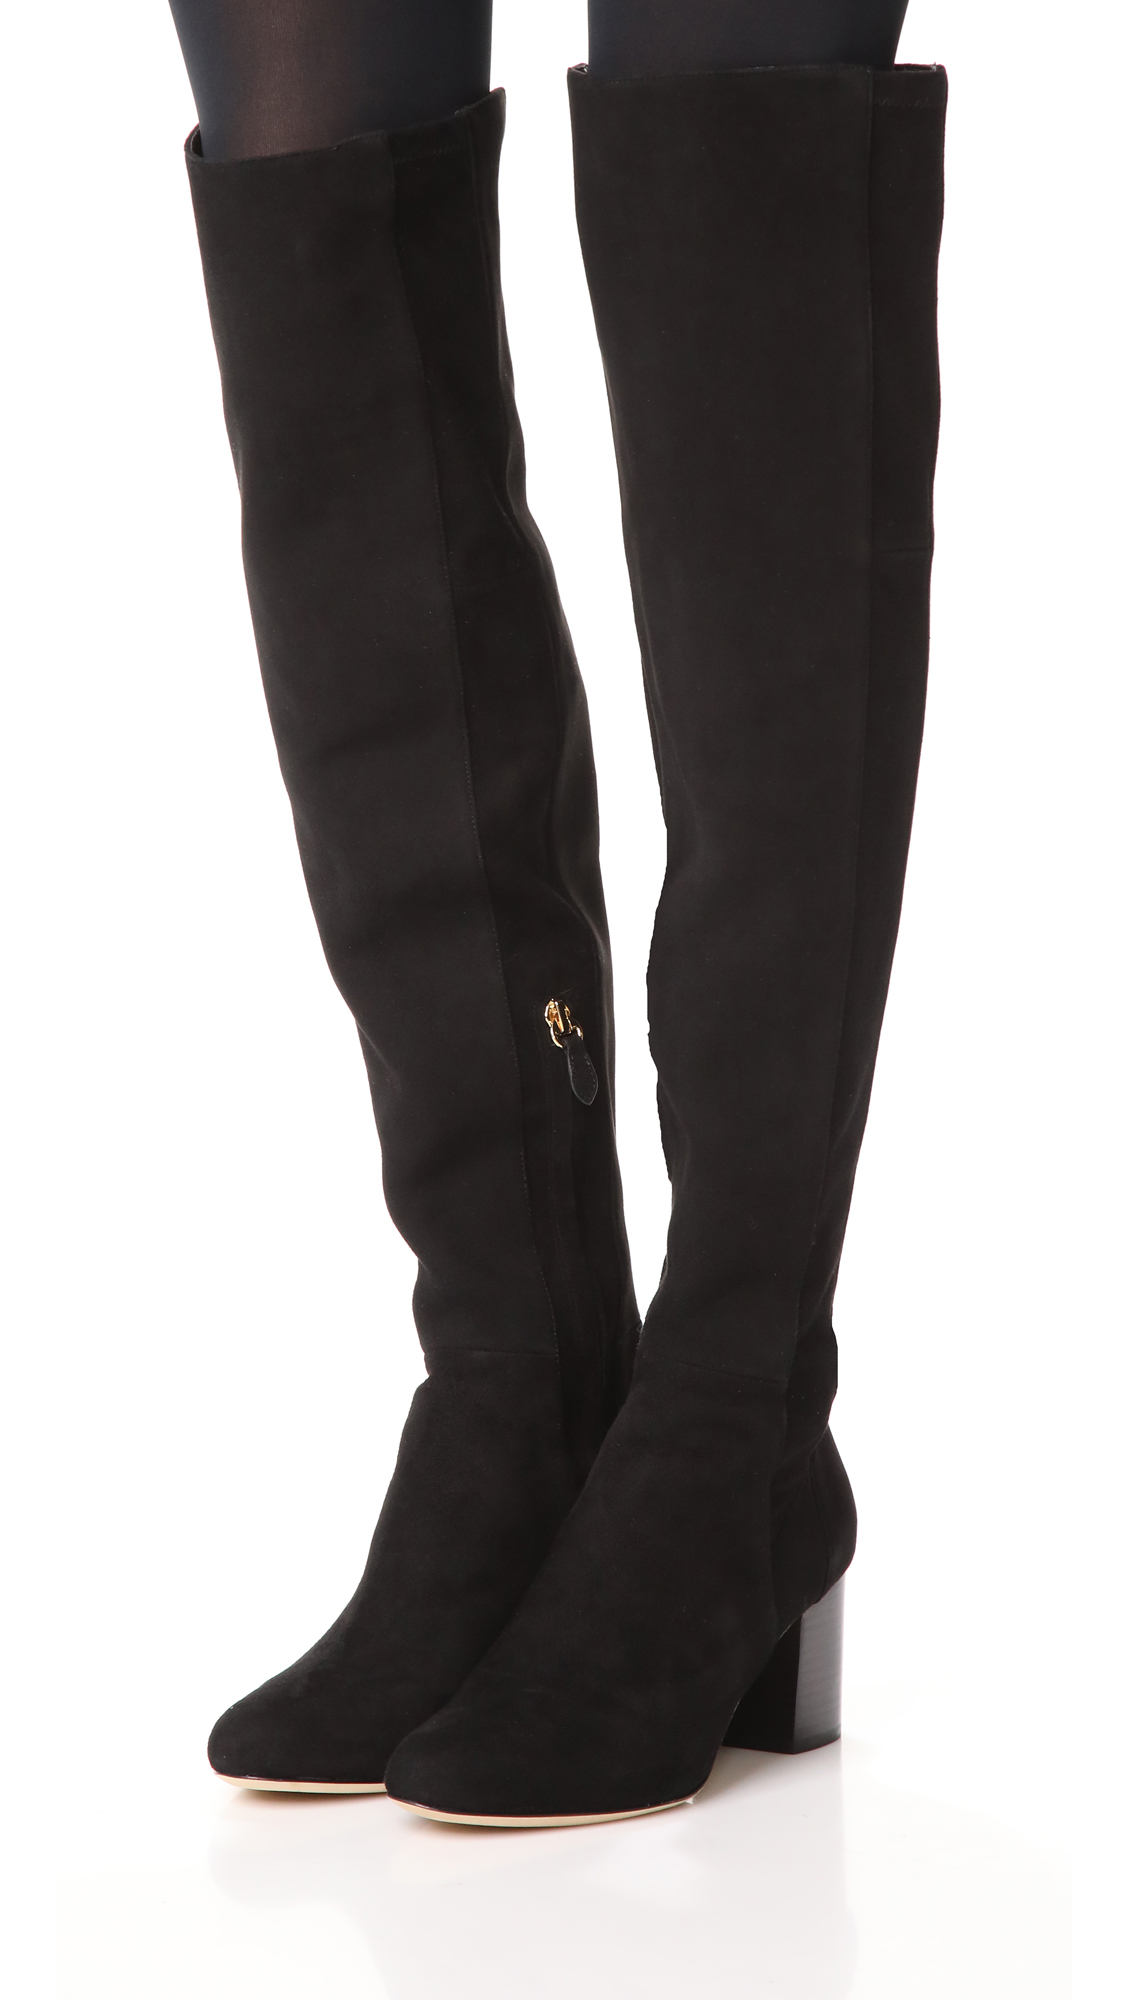 Exclusive Online Clearance Cheapest Price Diane Von Furstenberg Woman Suede Over-the-knee Boots Black Size 7.5 Diane Von F Free Shipping Really Clearance Many Kinds Of Buy Authentic Online NittORi